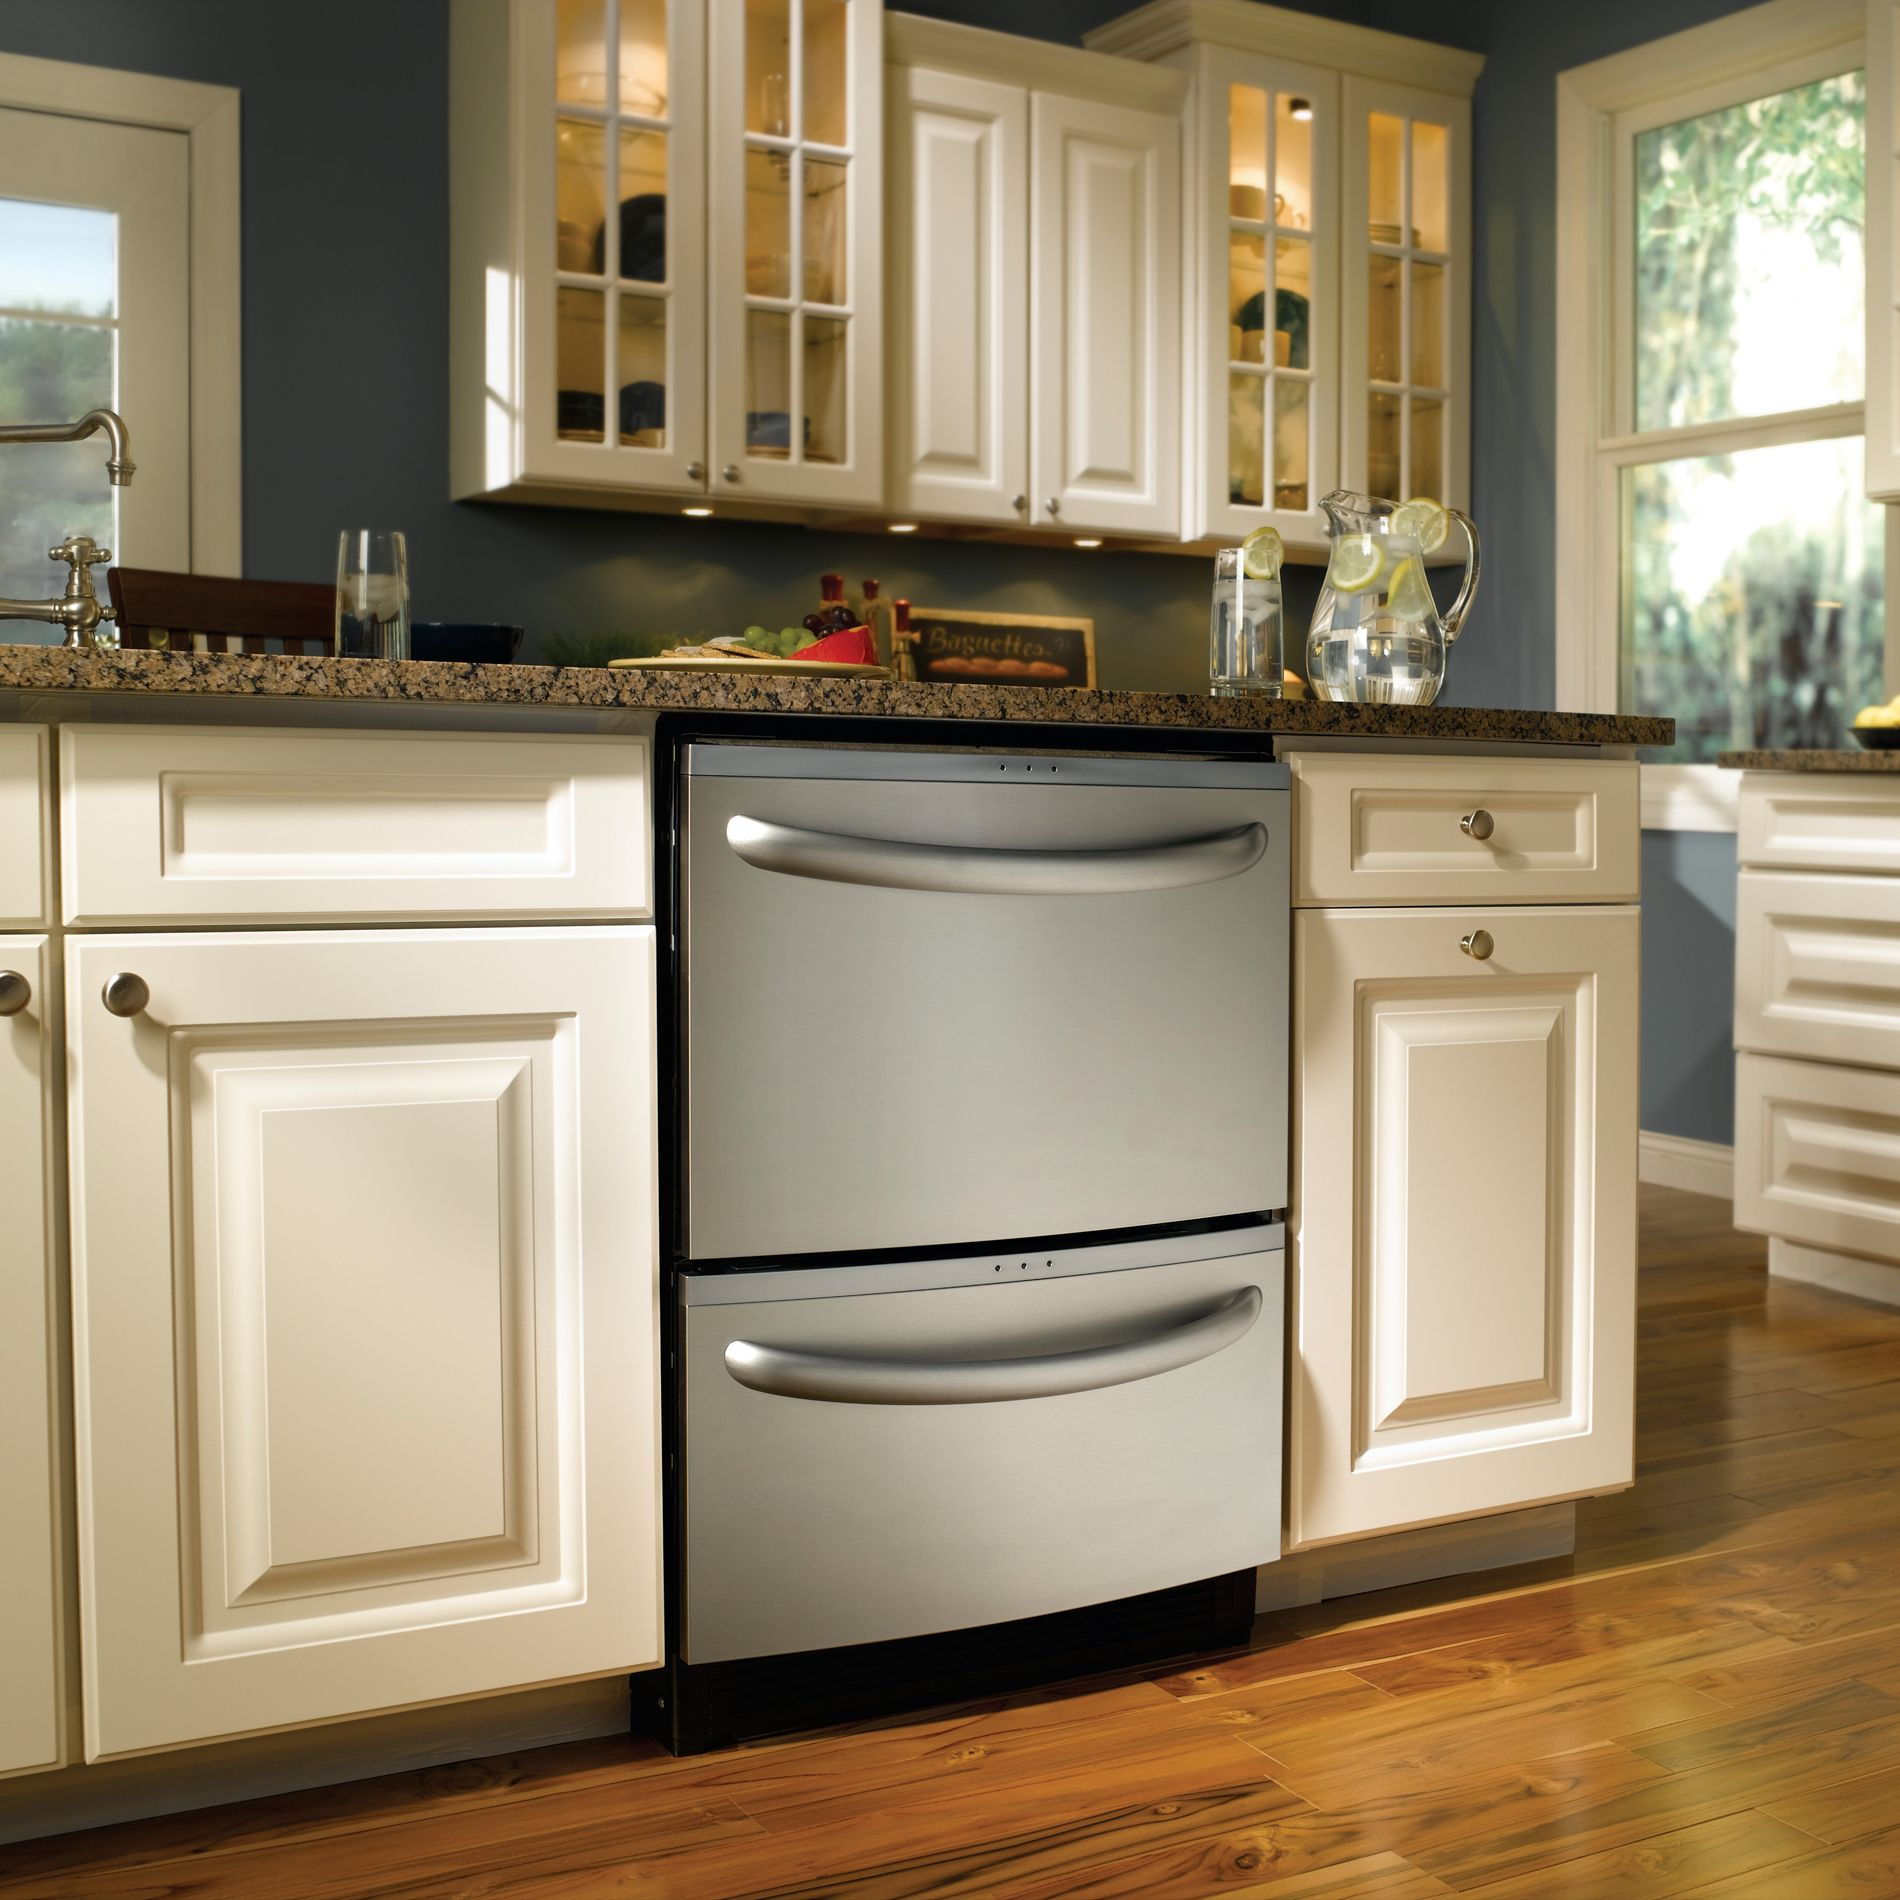 """Kenmore Elite 24"""" Double Drawer Dishwasher with Sliding & Variable Position Tines (1334)"""